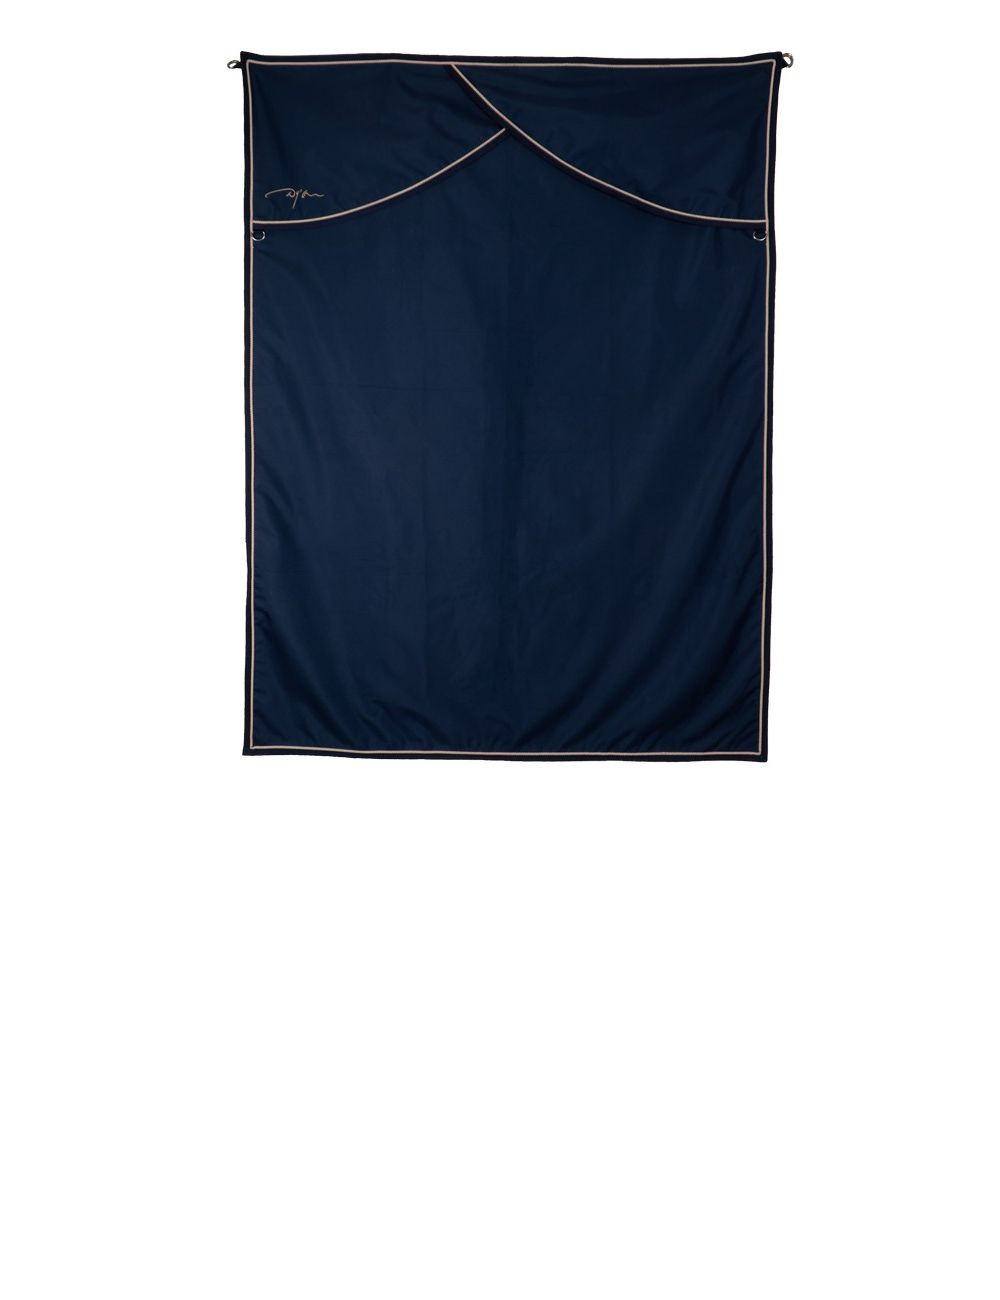 Dyon stable curtain - 1